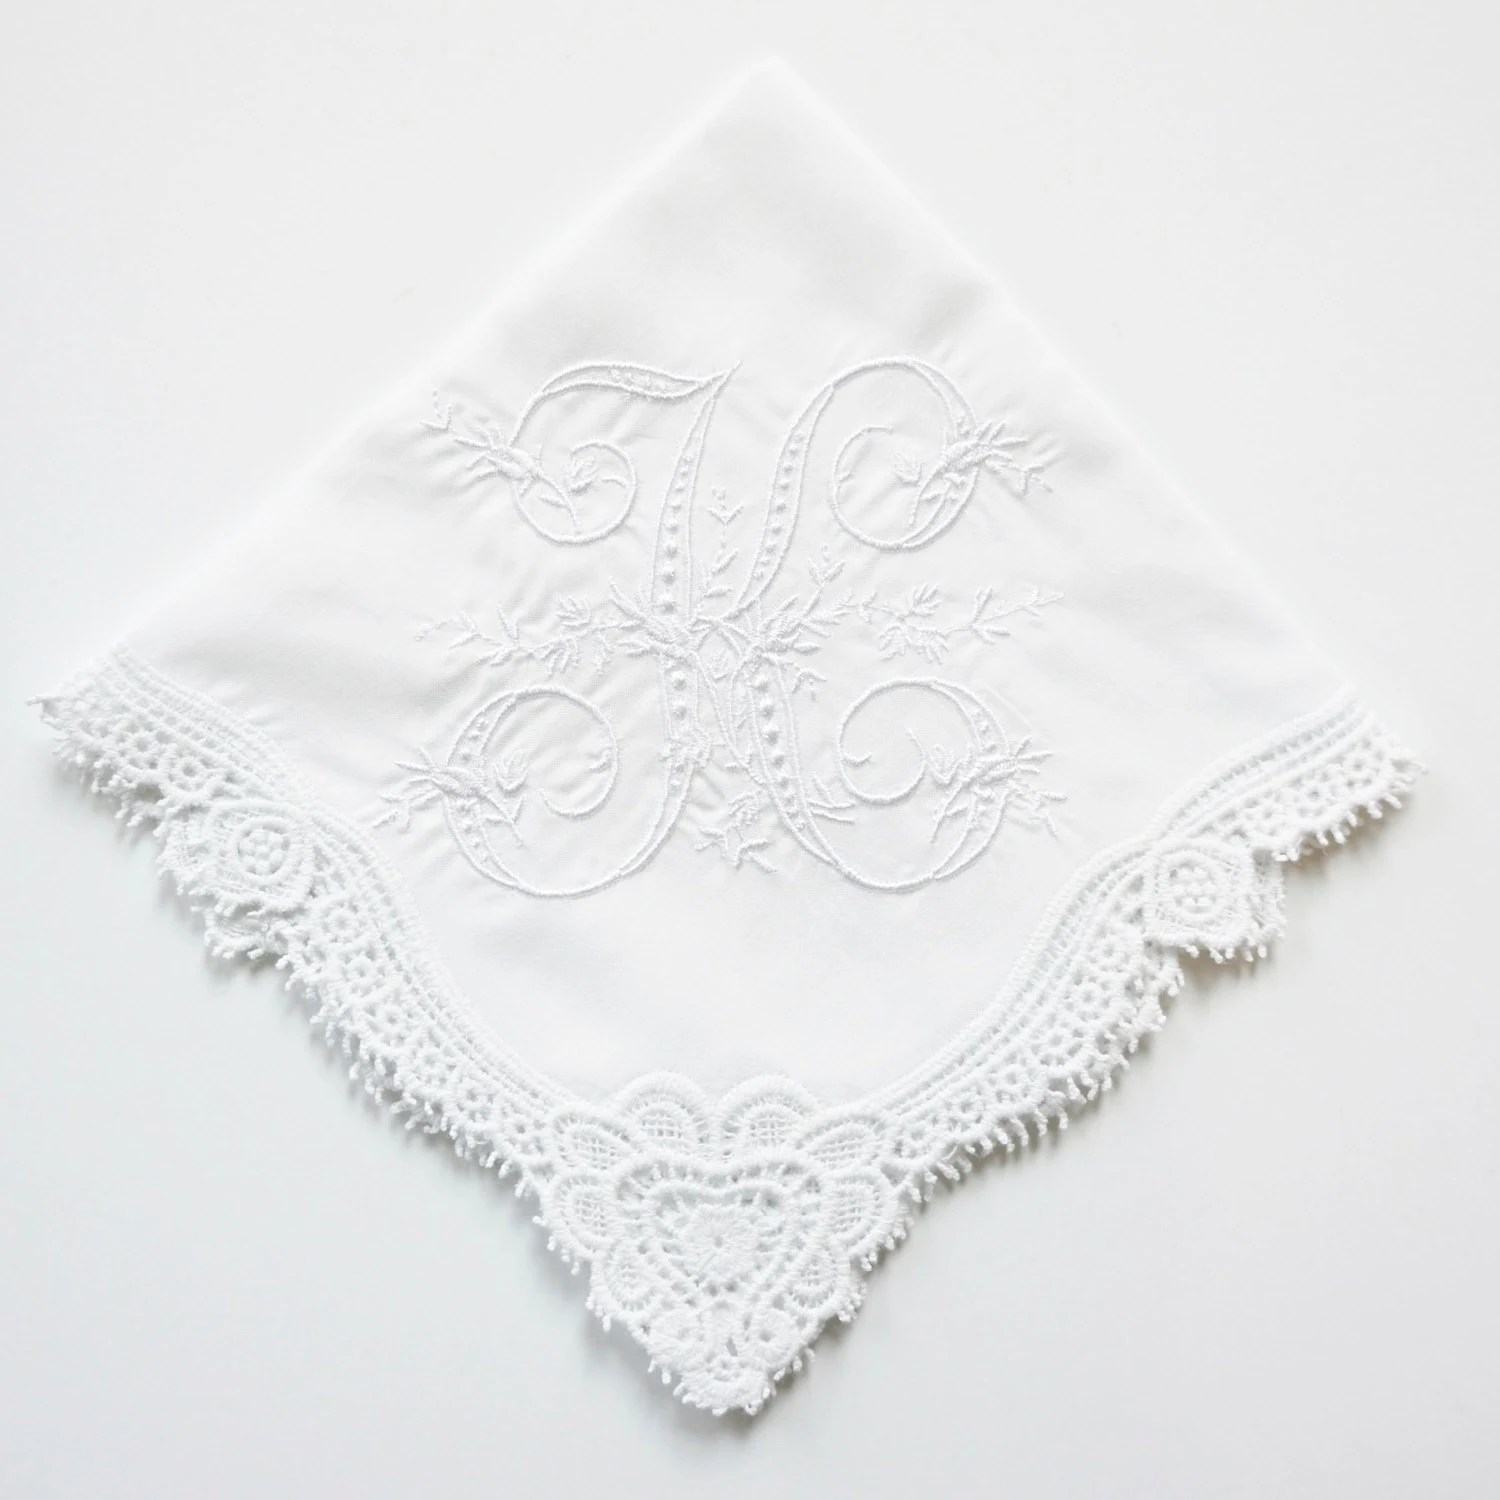 Lace Trim or Hemstitched Edge Handkerchief, Cotton